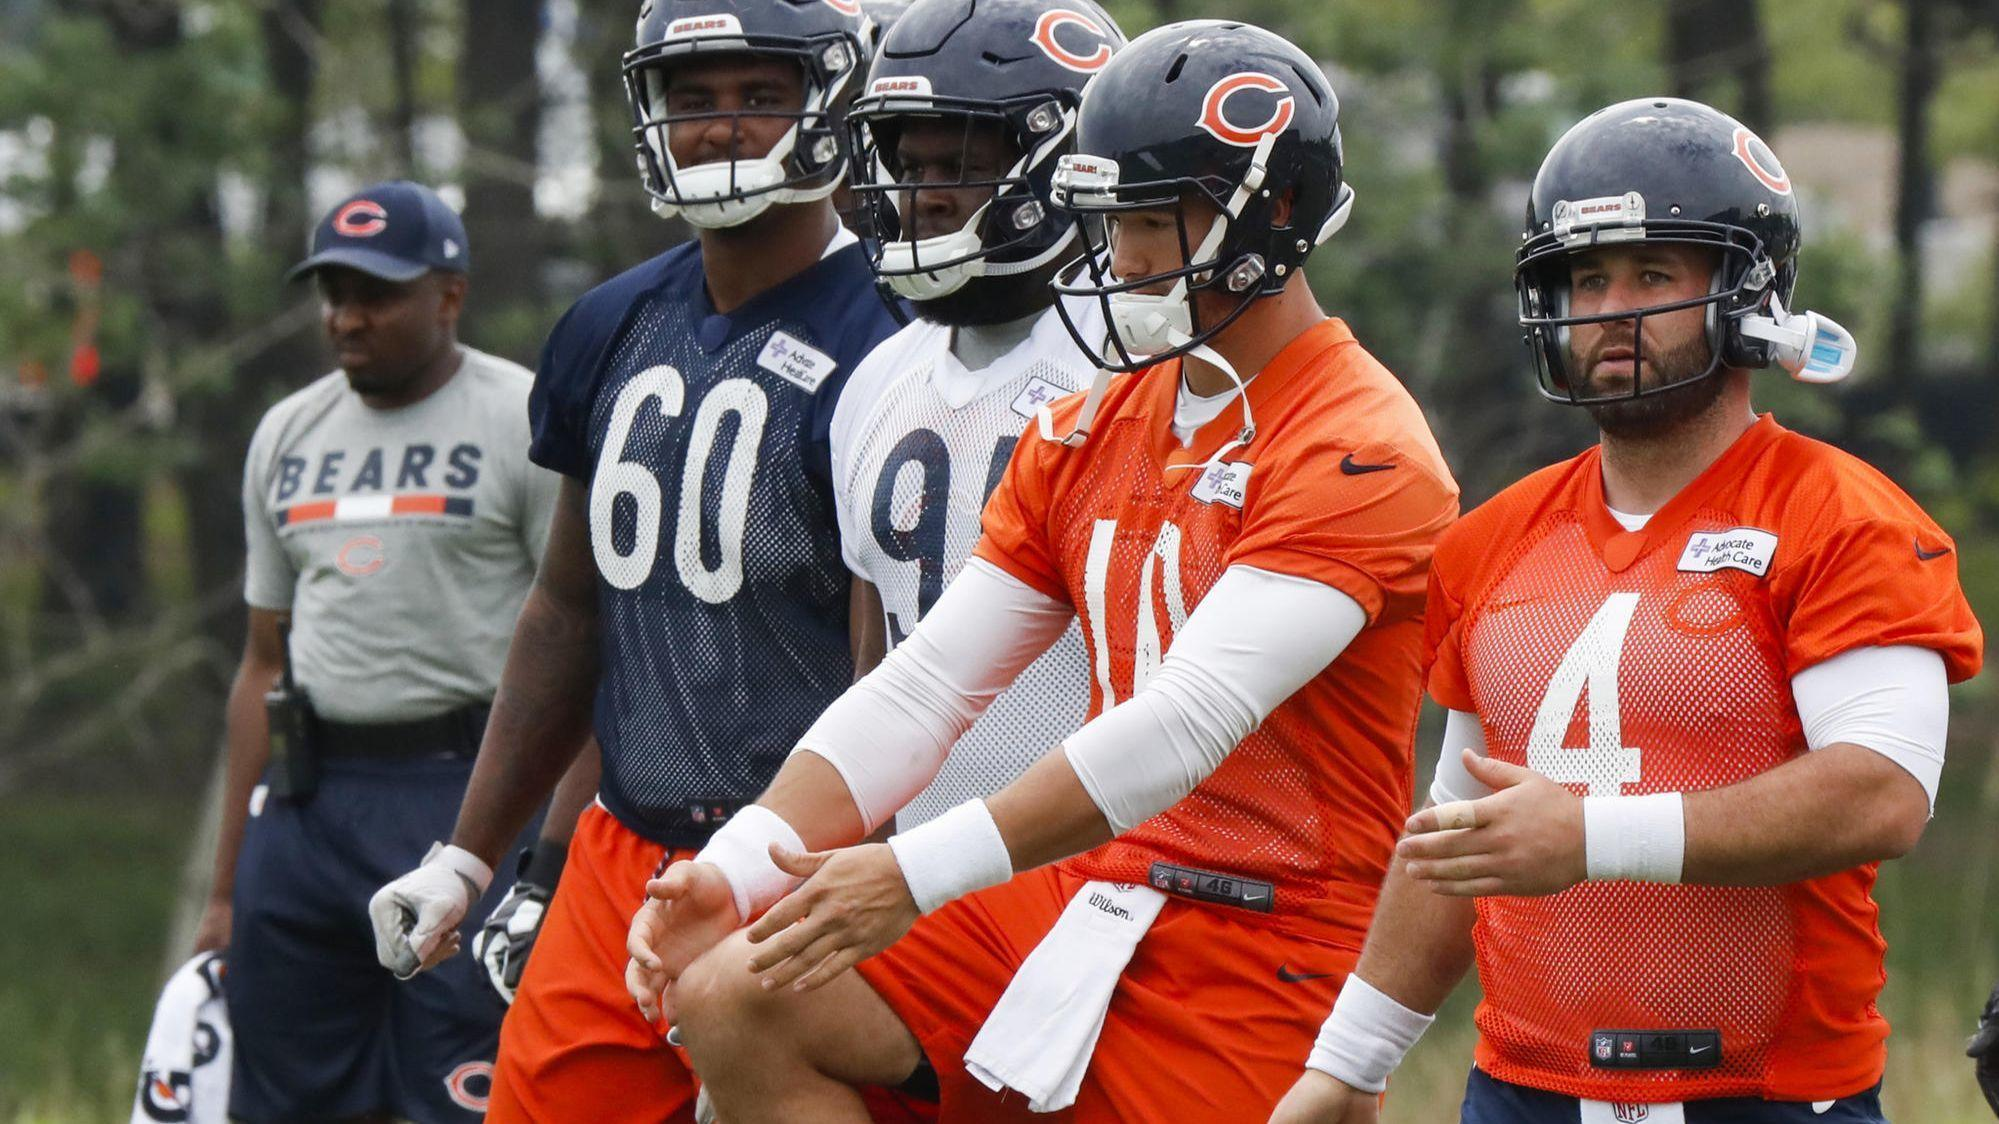 Ct-spt-bears-chase-daniel-mitch-trubisky-questions-20180607